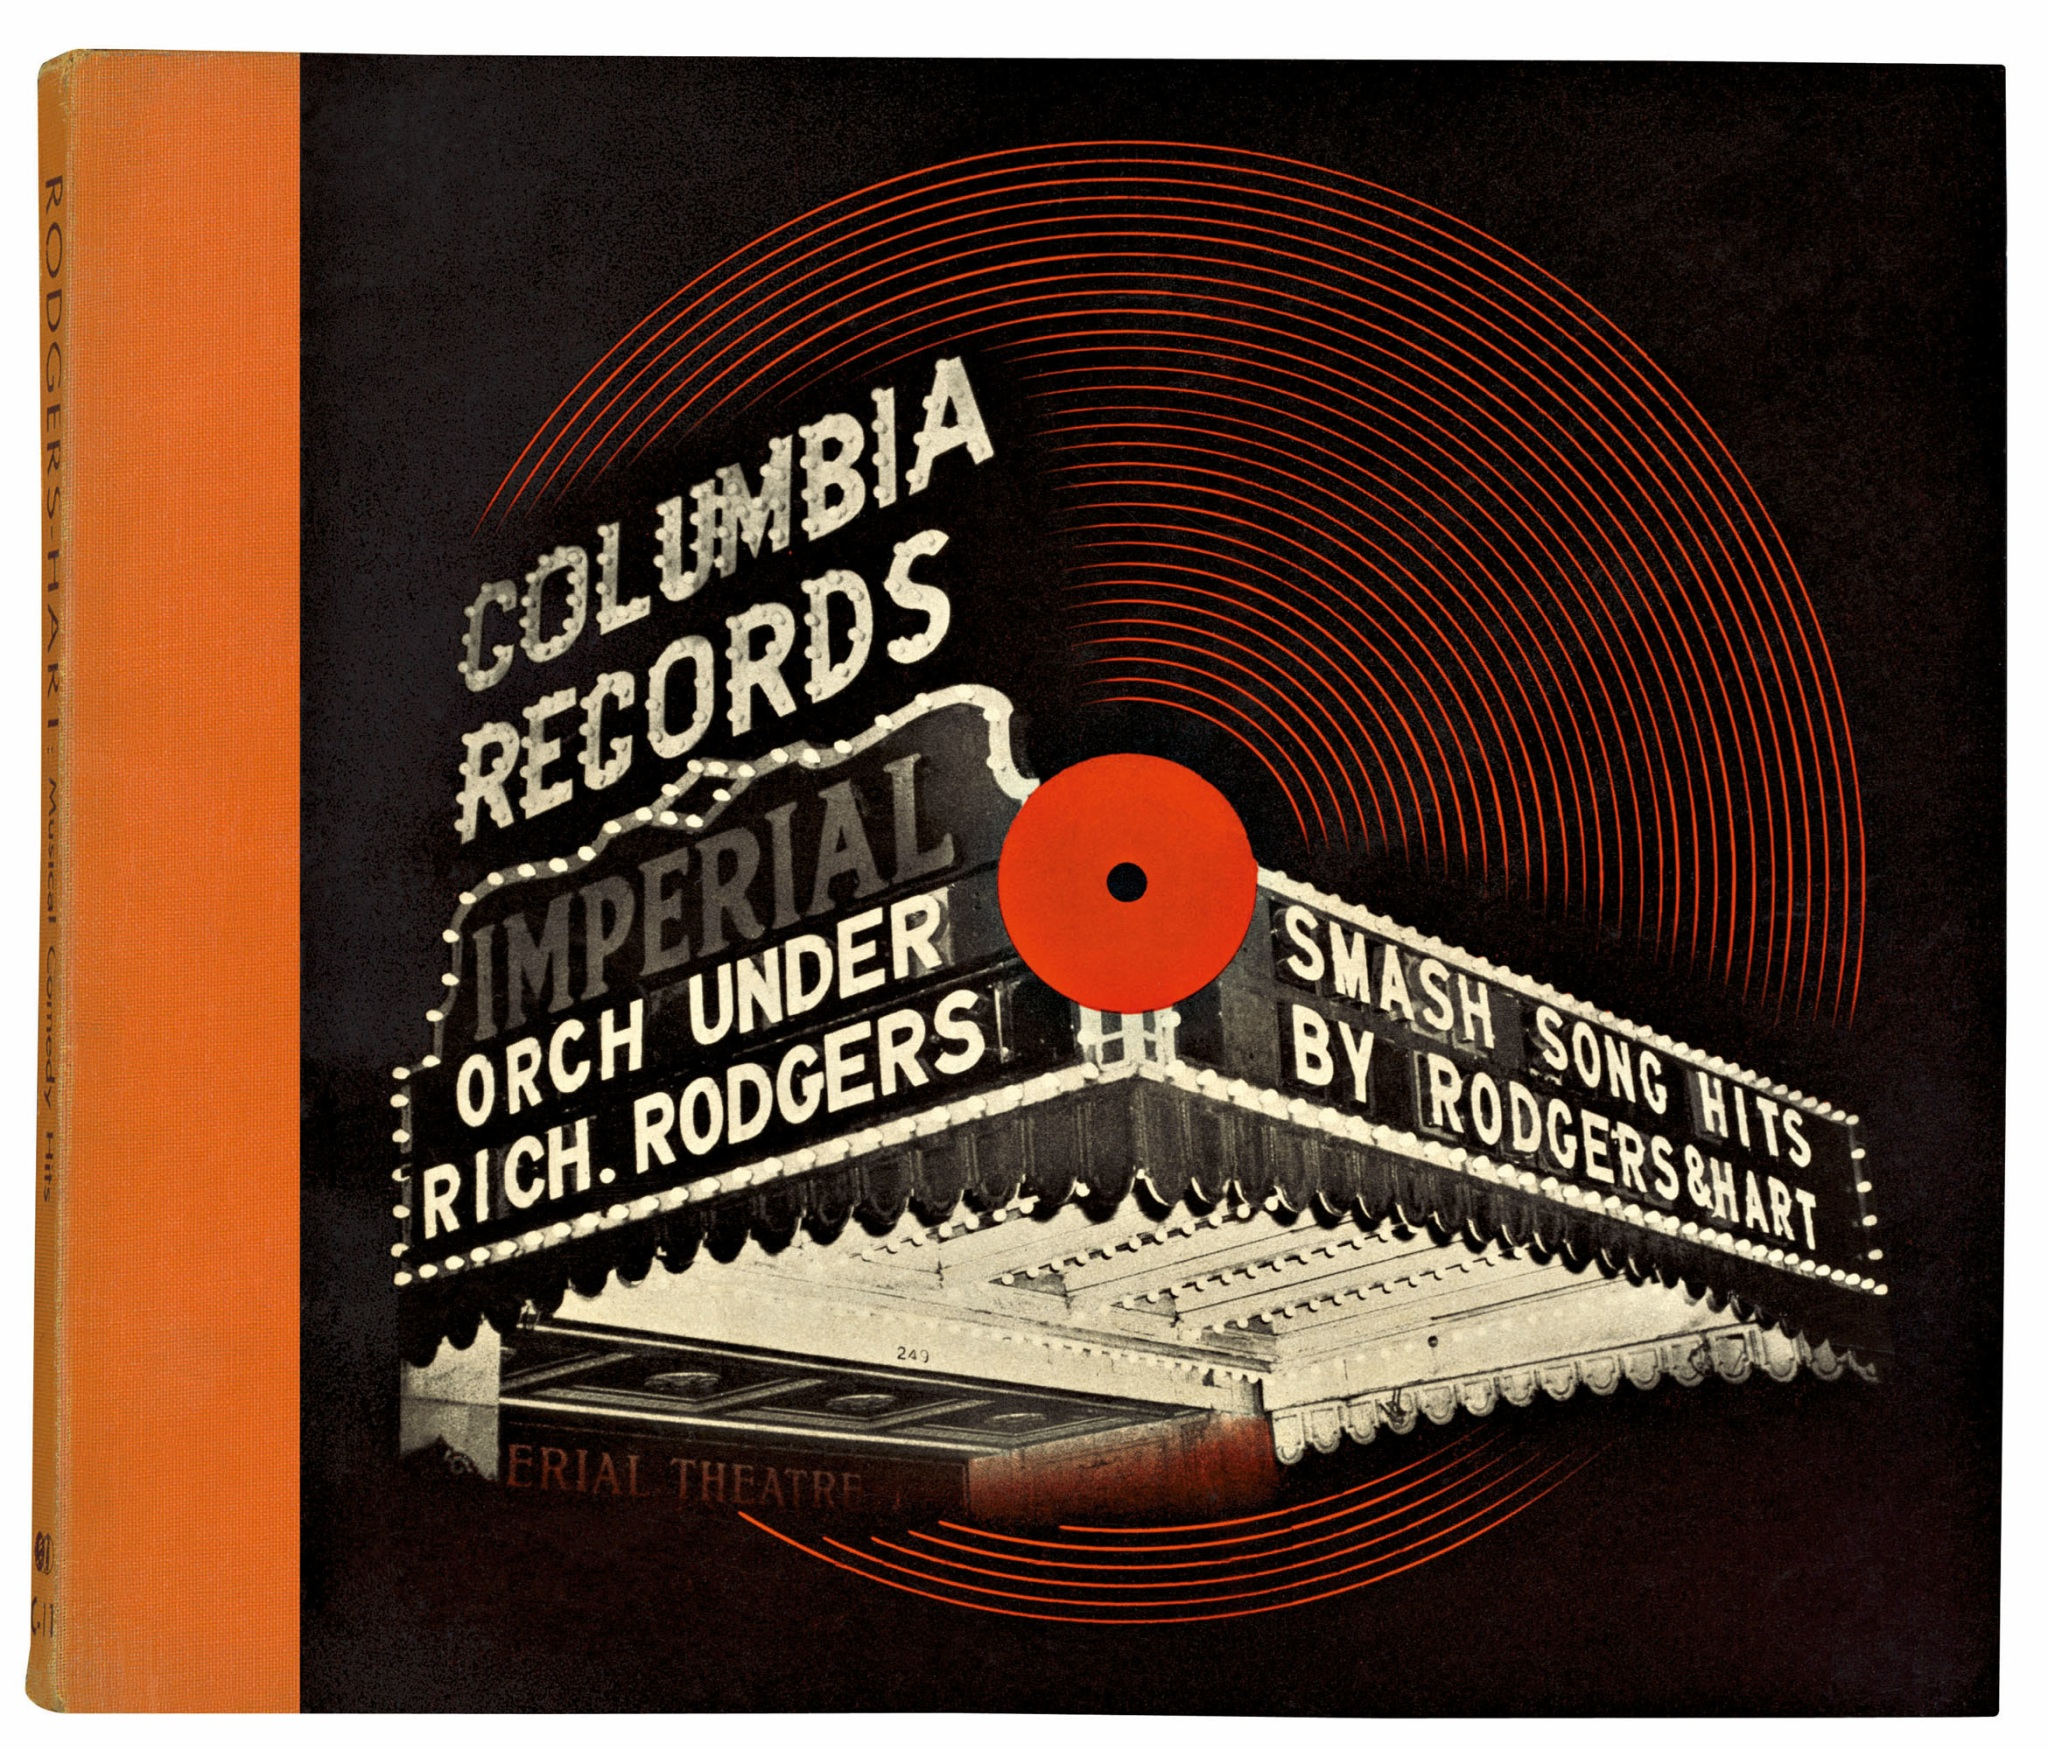 history of album cover art - first album cover design by alex steinweiss